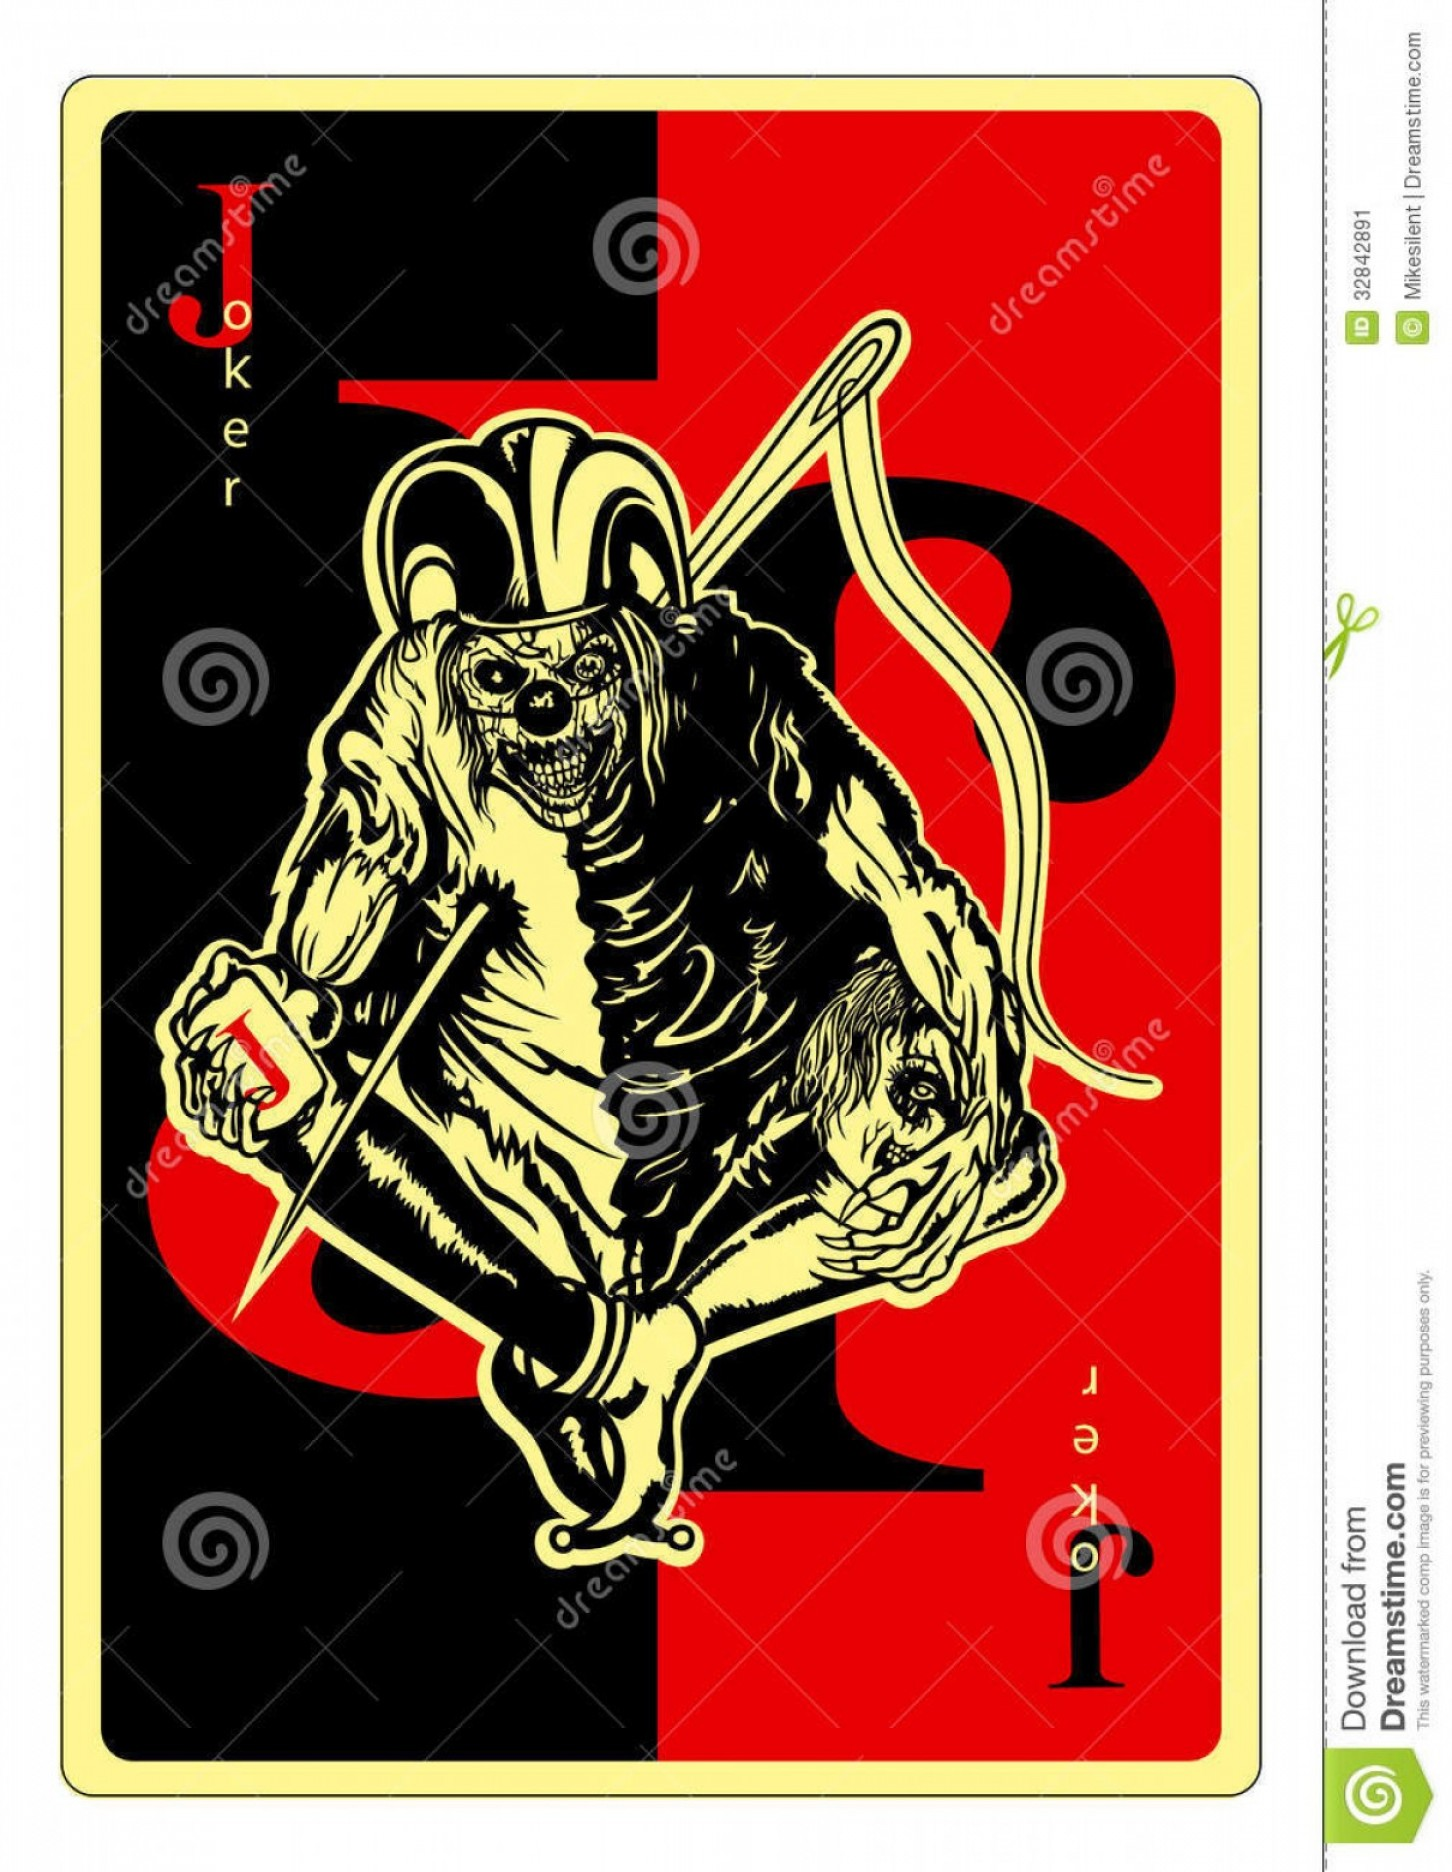 Joker Vector Graphics: Stock Image Joker Playing Card Pierced Needle Vector Graphic Image